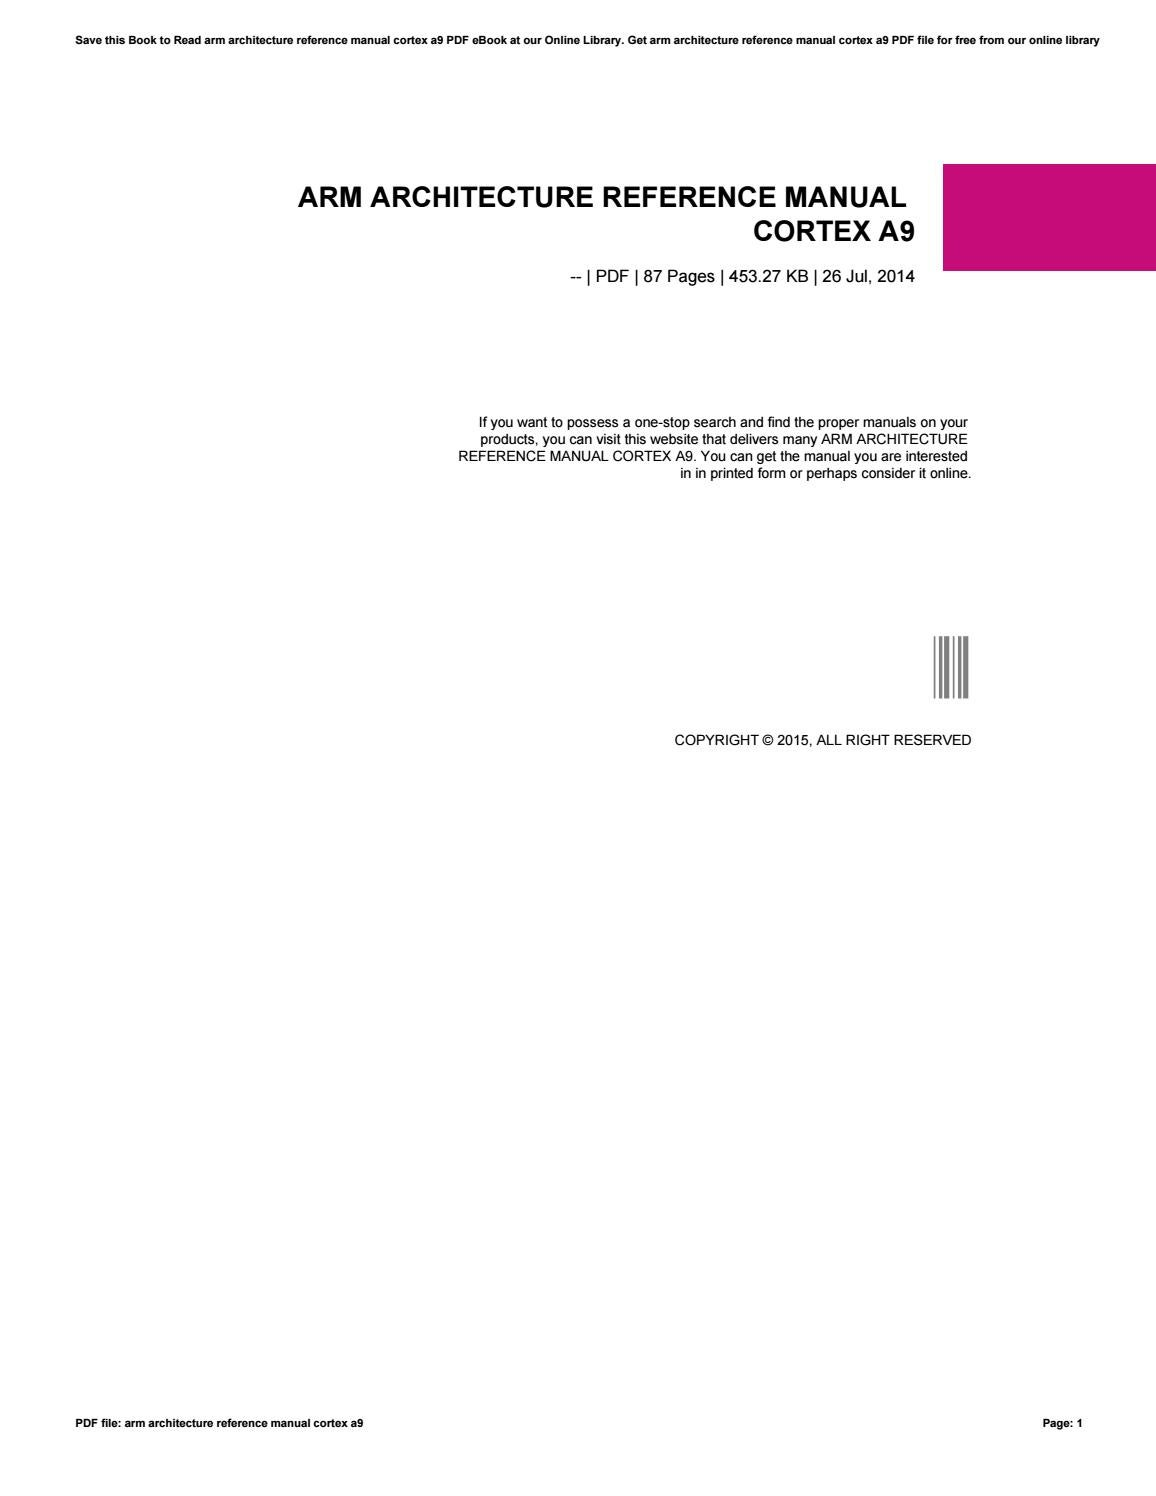 arm architecture reference manual cortex a9 by webide9 issuu rh issuu com Proper MLA in Text Citation Proper Reference List